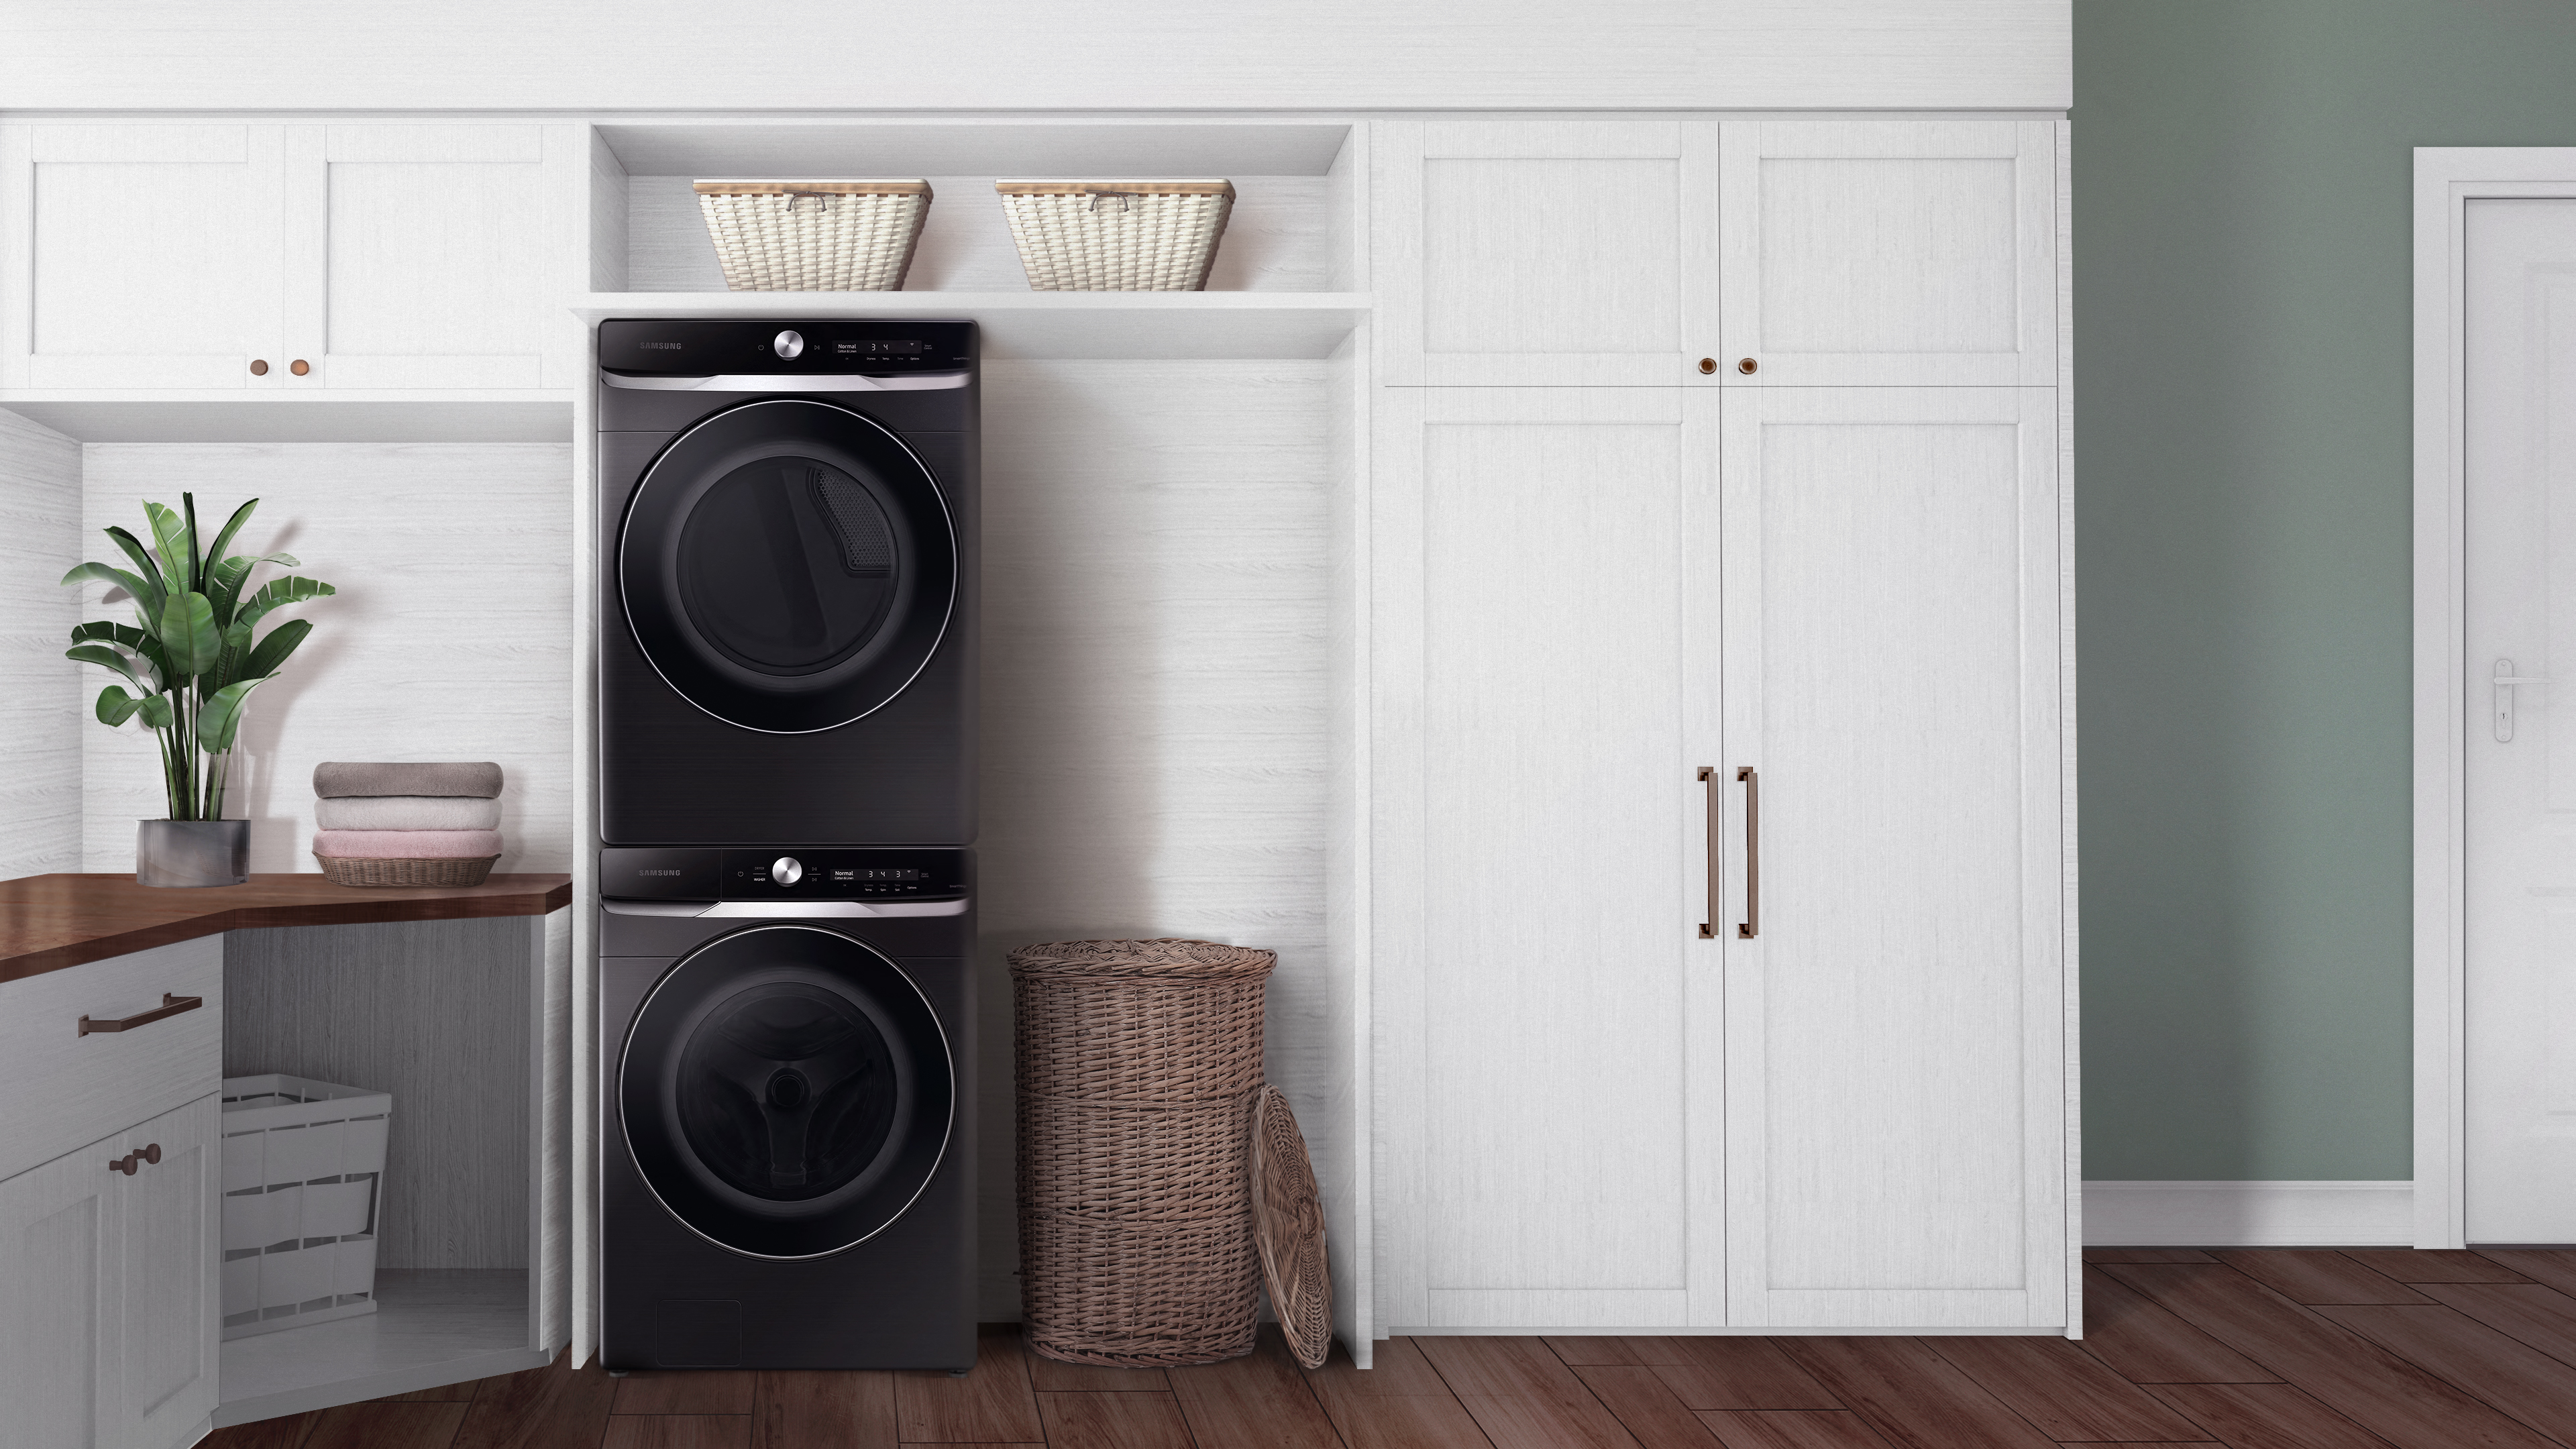 Washer Dryer Pair - CES 2021